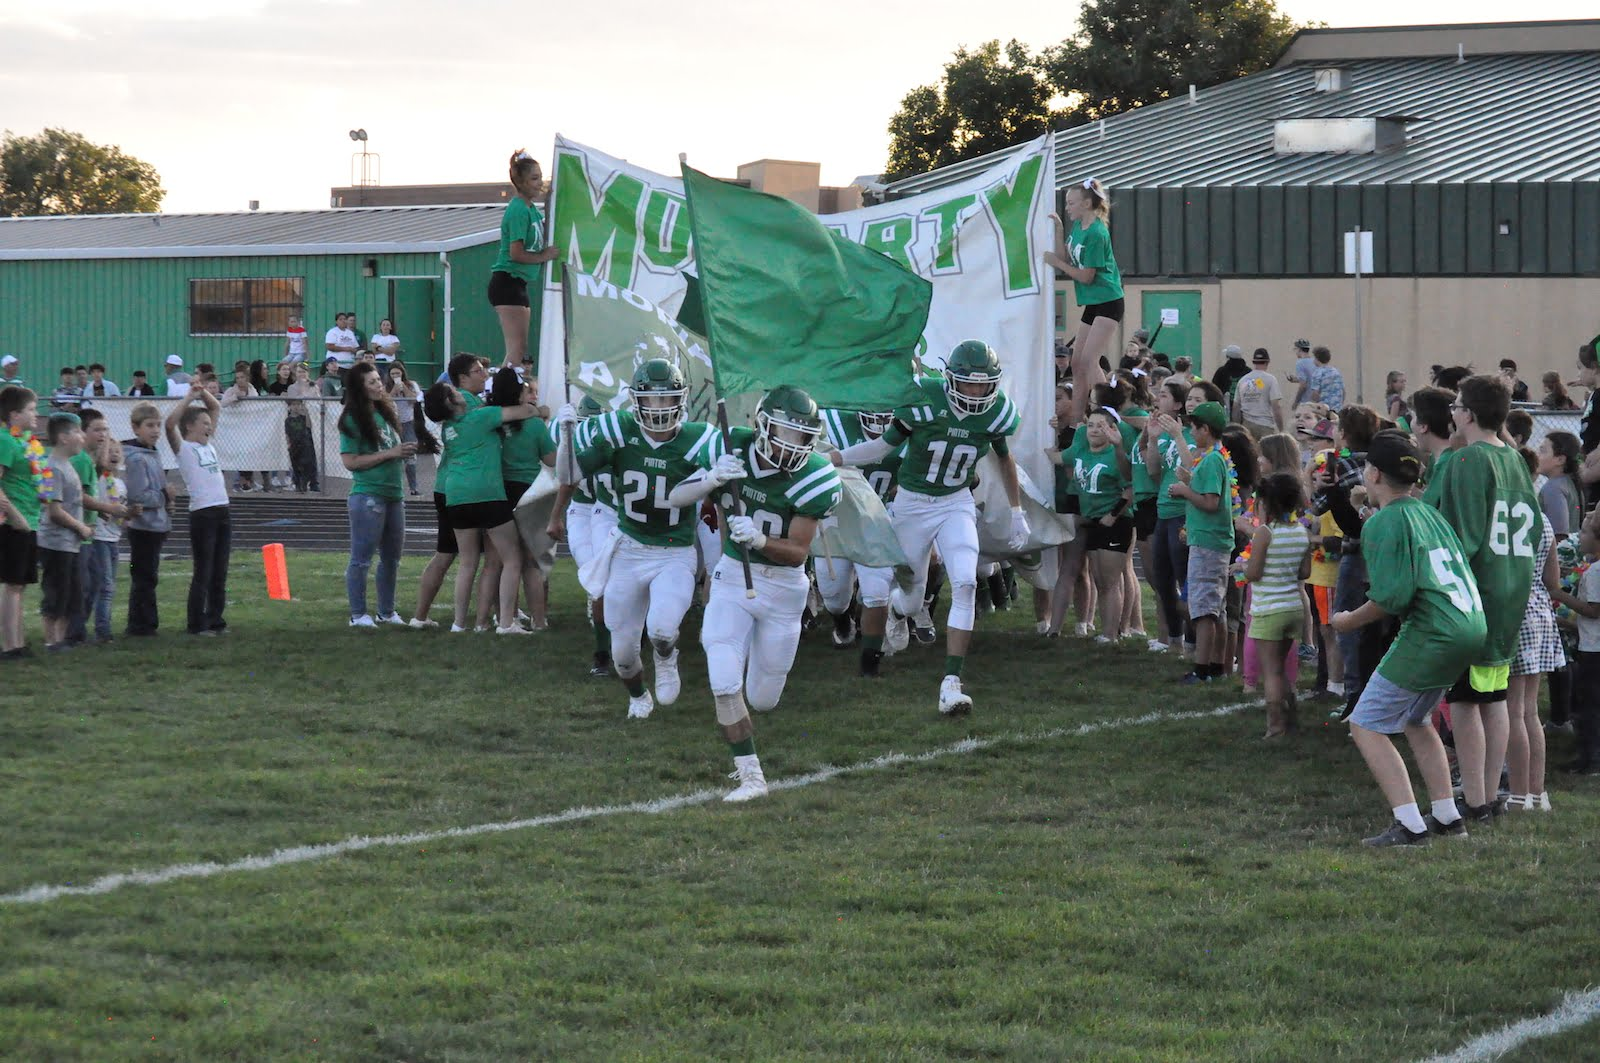 A fall without football in Moriarty: Missing everything about the game, especially Pete Sandoval